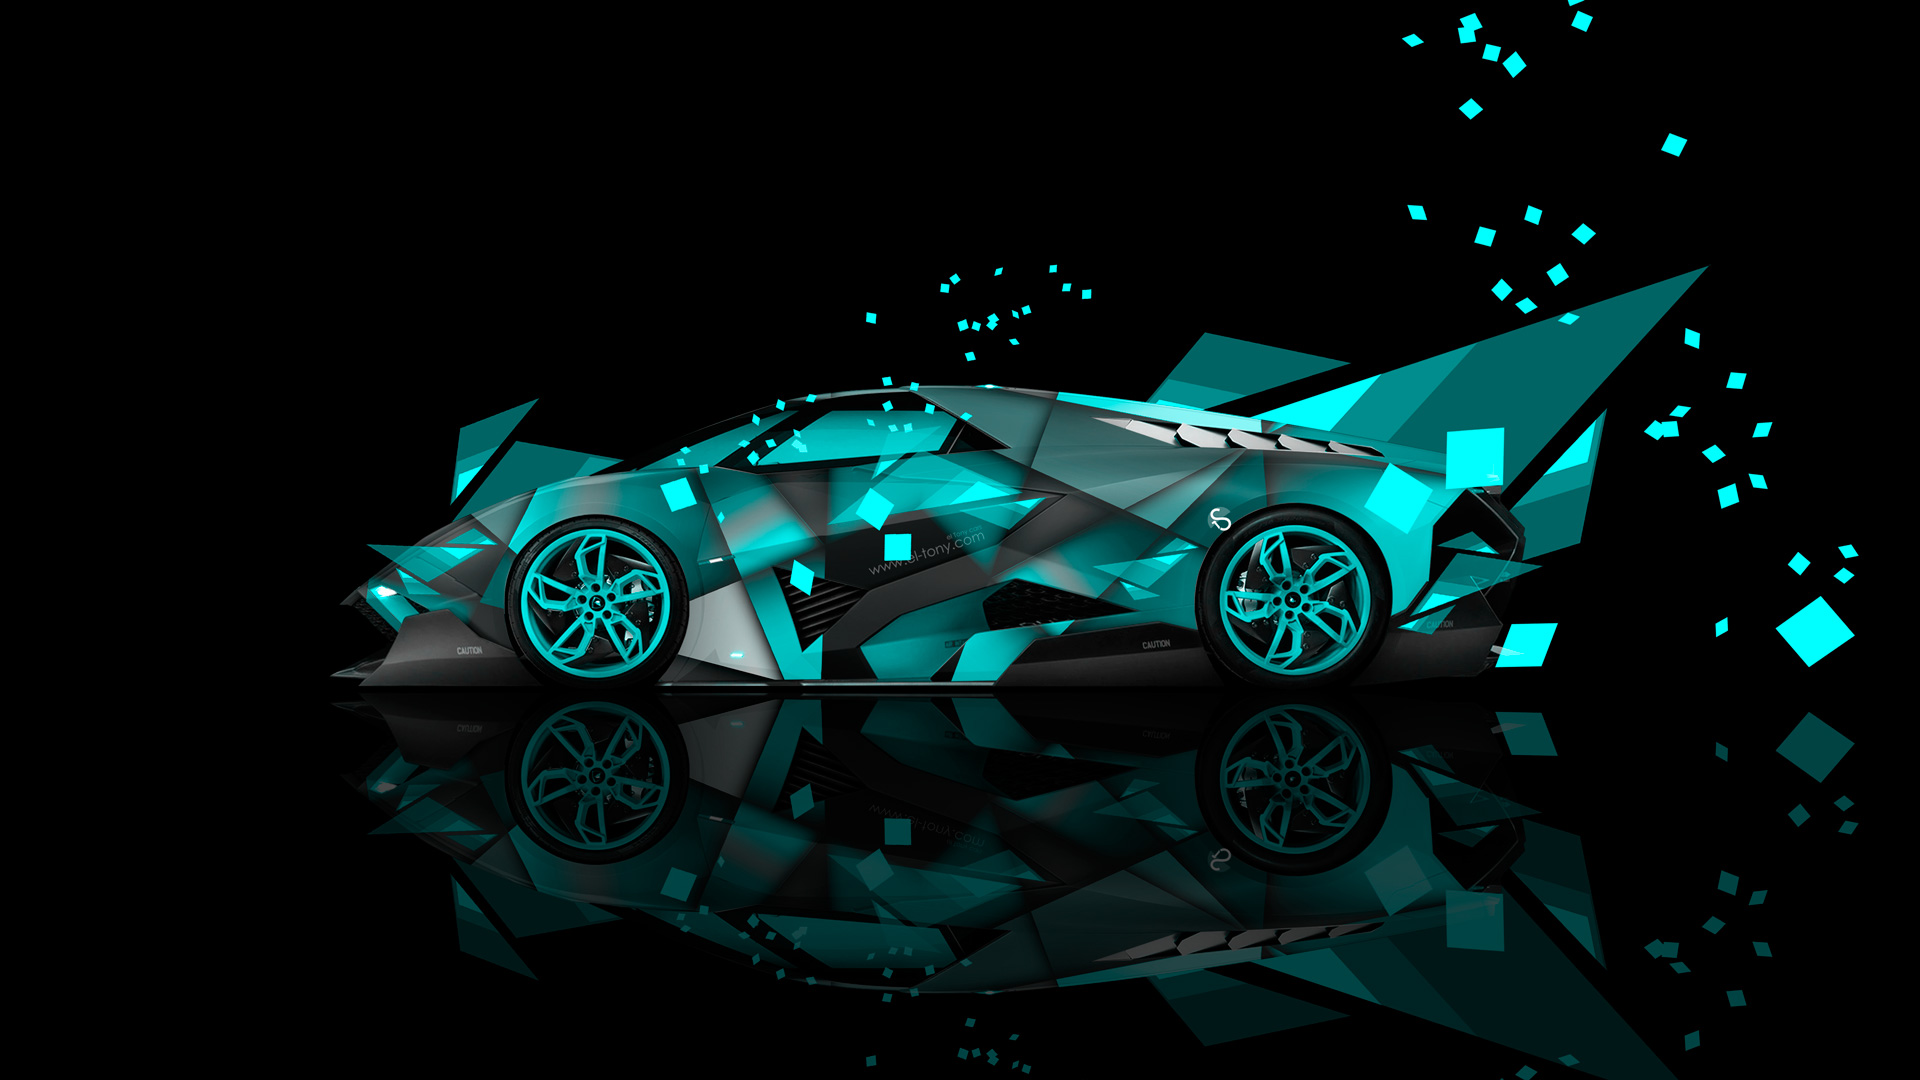 Attirant ... Lamborghini Egoista Side Super Abstract Car 2014 Photoshop